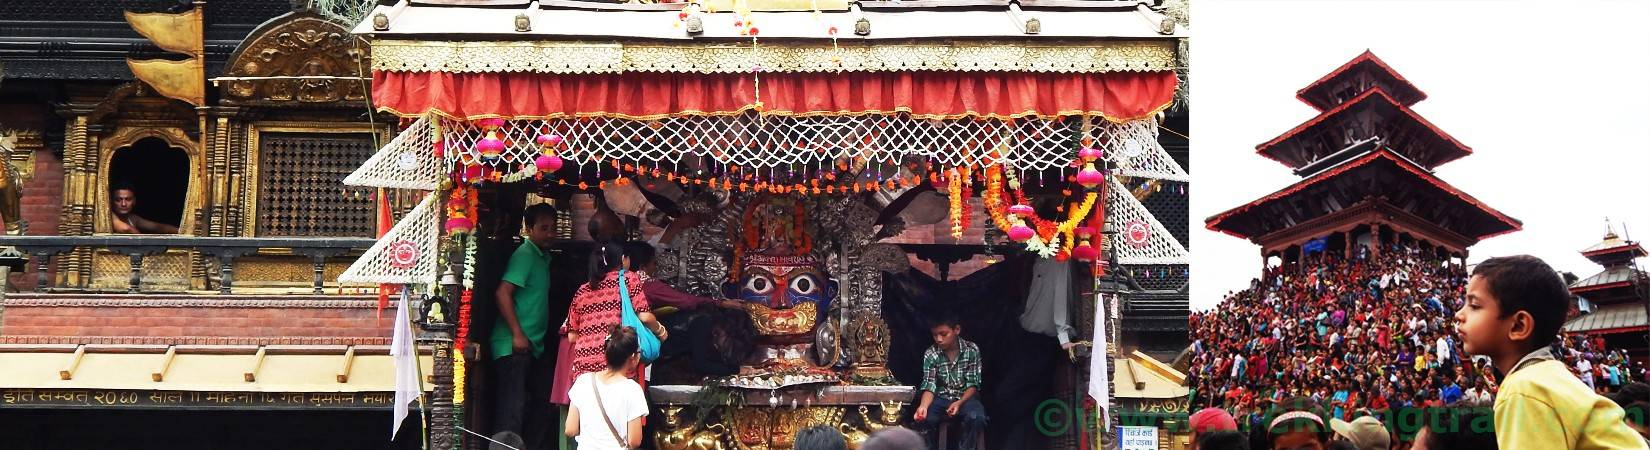 Tours in Nepal | Aakash Bhairav Temple and Injra Jatra Festival of Kathmandu Durbar Square